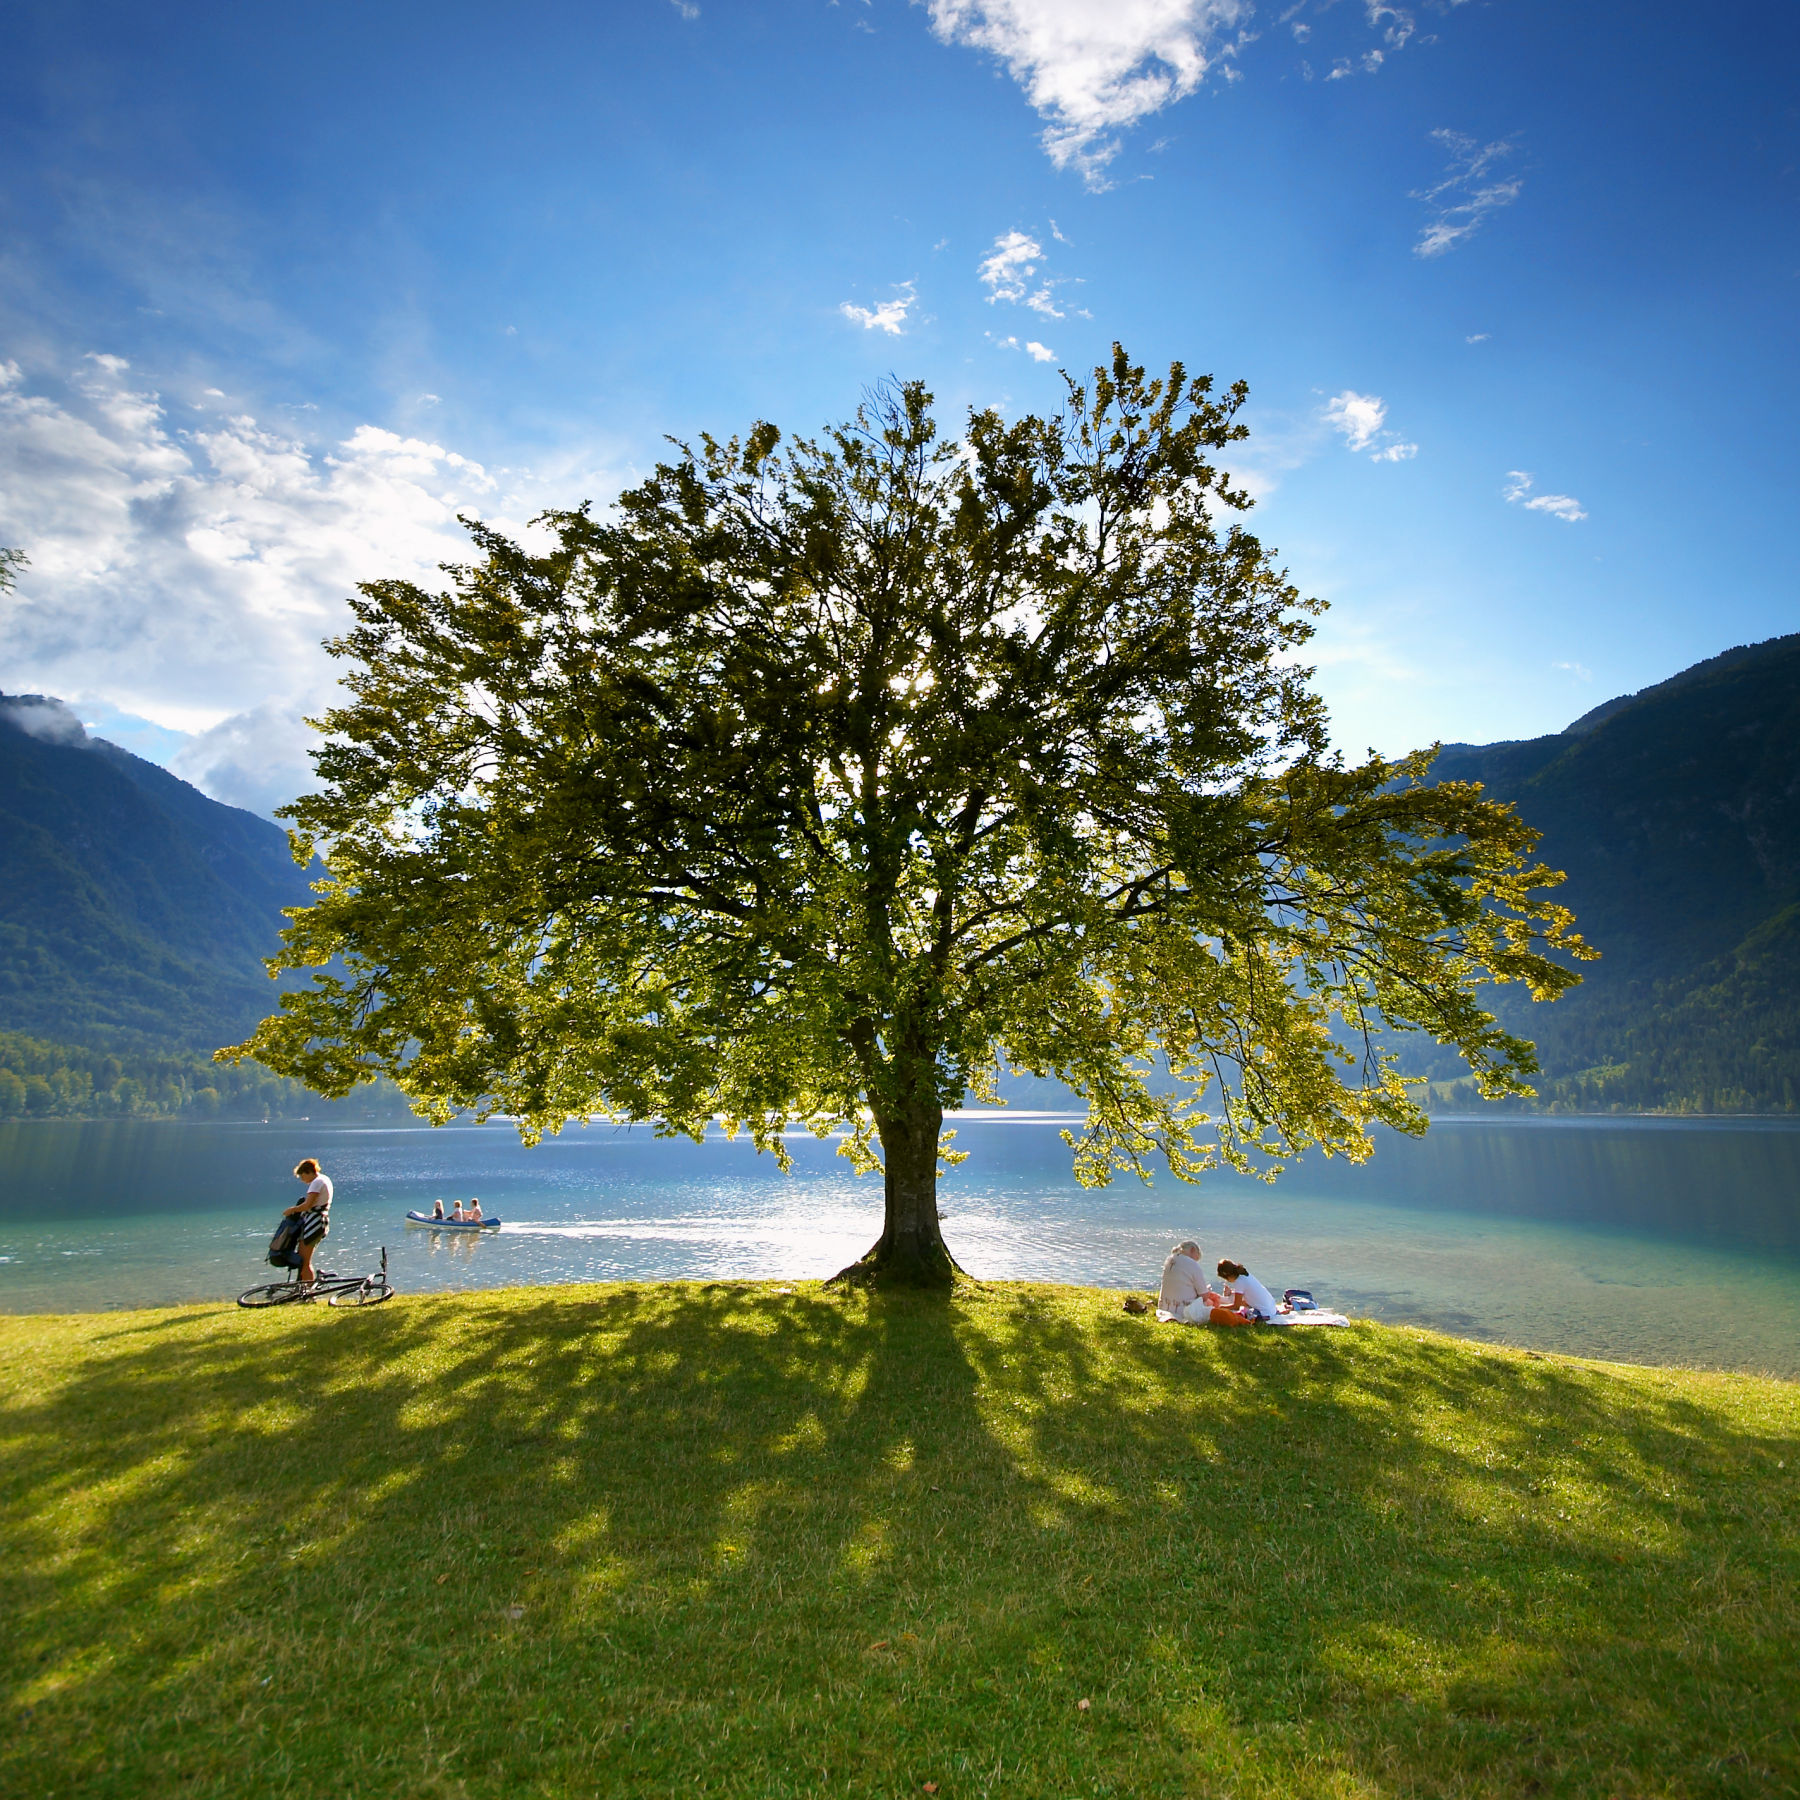 slovenia celebrated the earth day on april 22nd as the 5th most